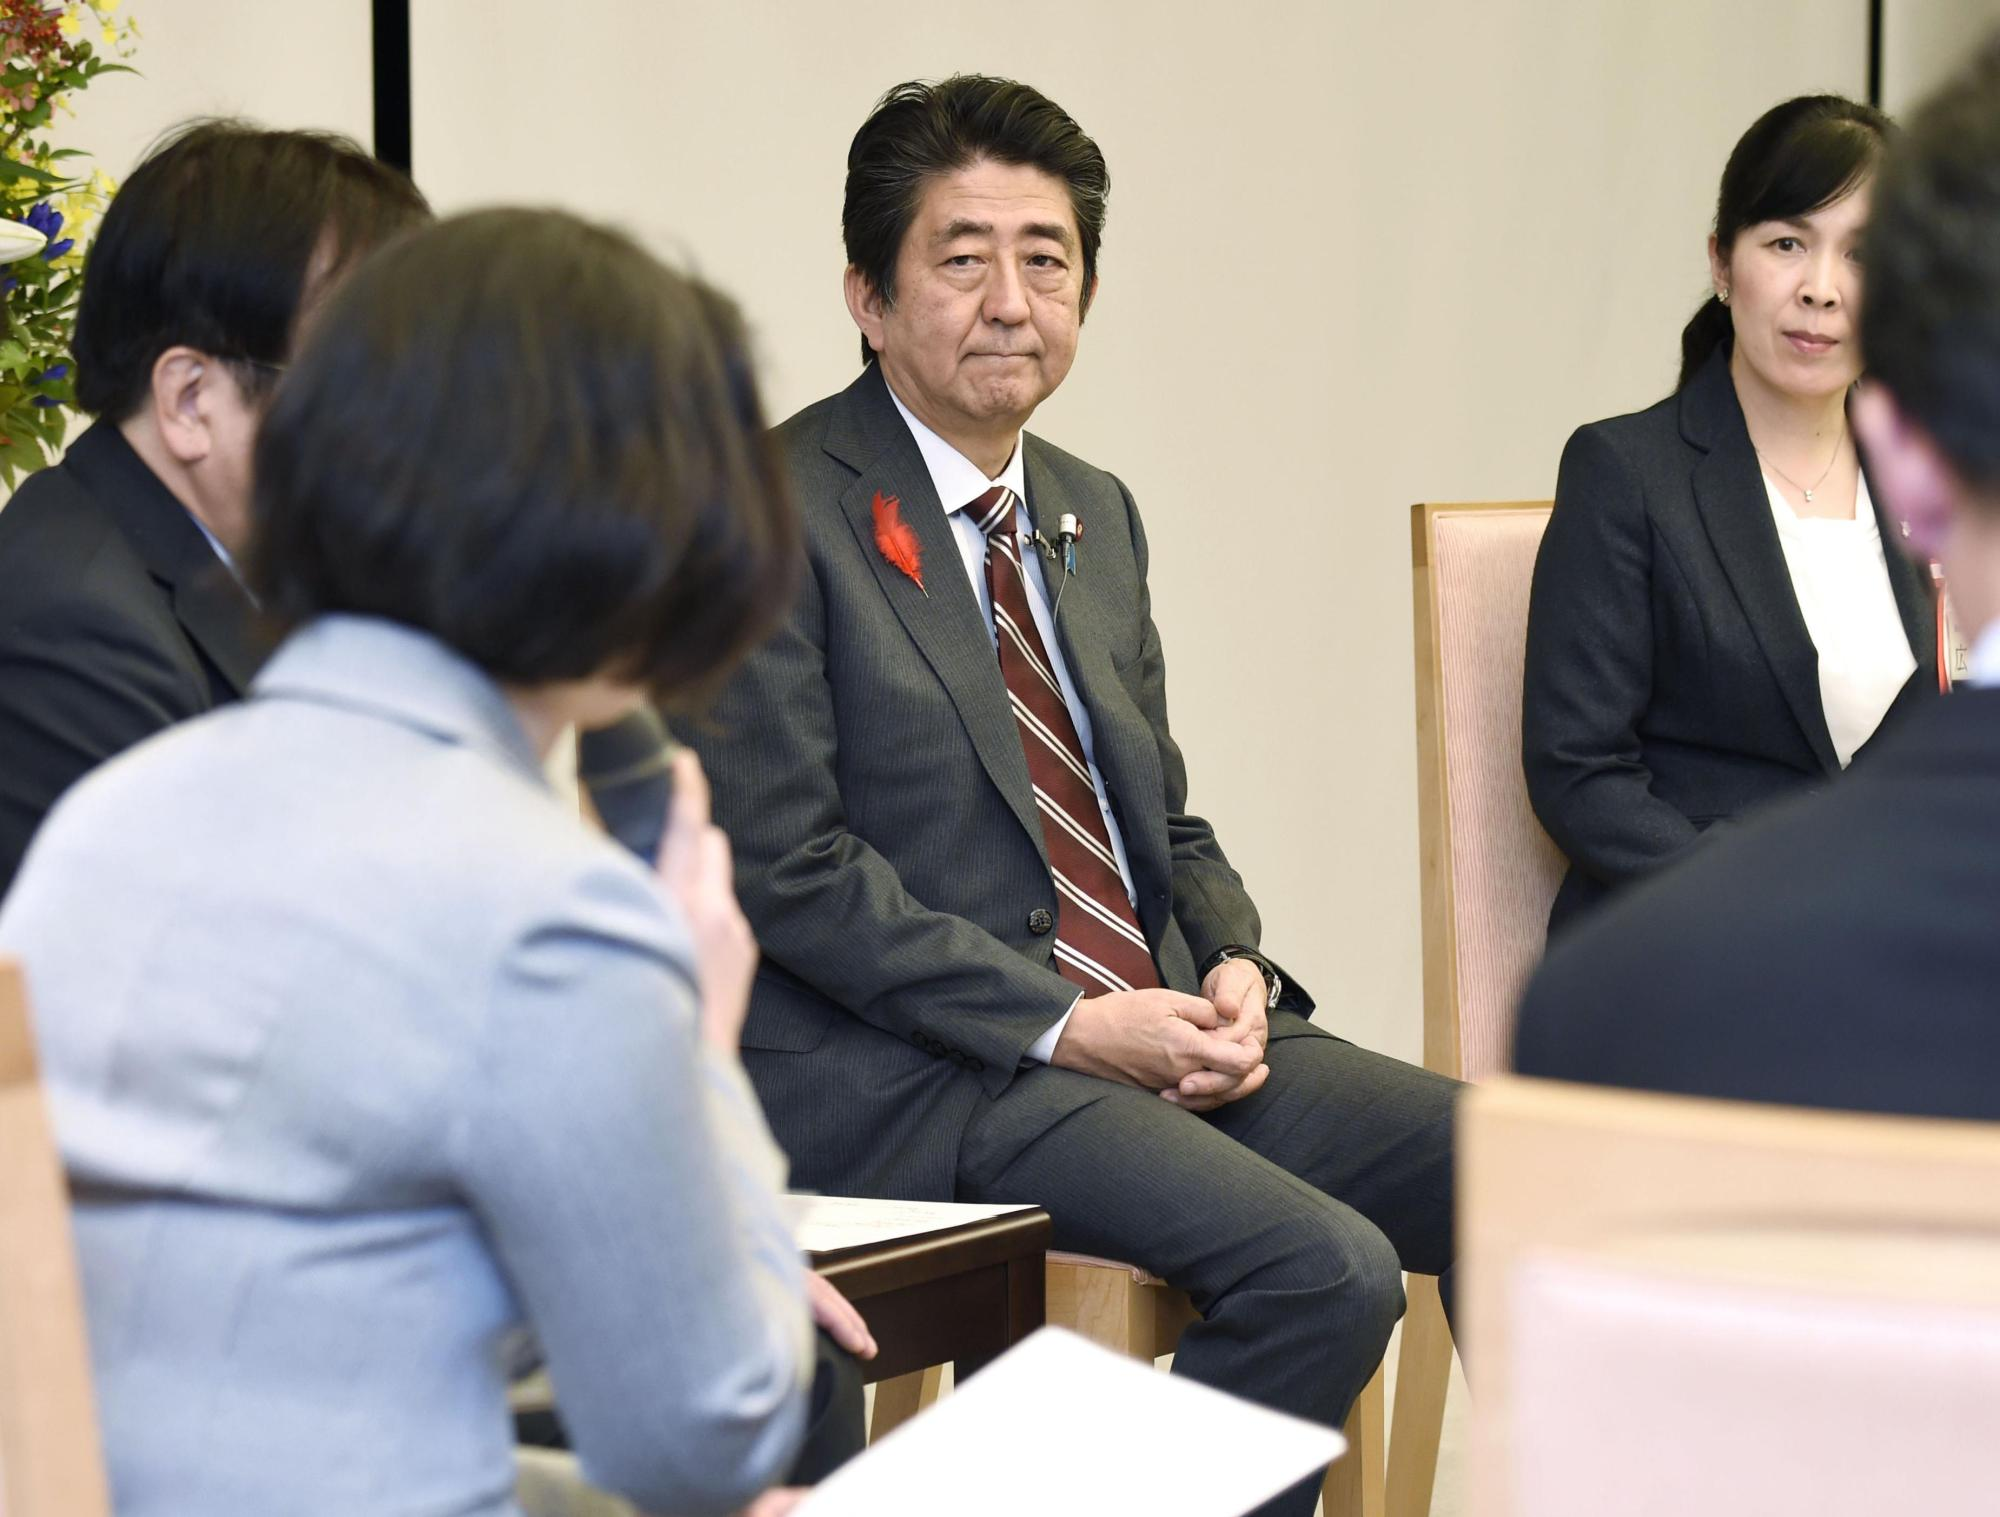 Prime Minister Shinzo Abe holds a meeting with people who have experiences in changing jobs or doing side jobs at the Prime Minister's Office in October 2016. | KYODO